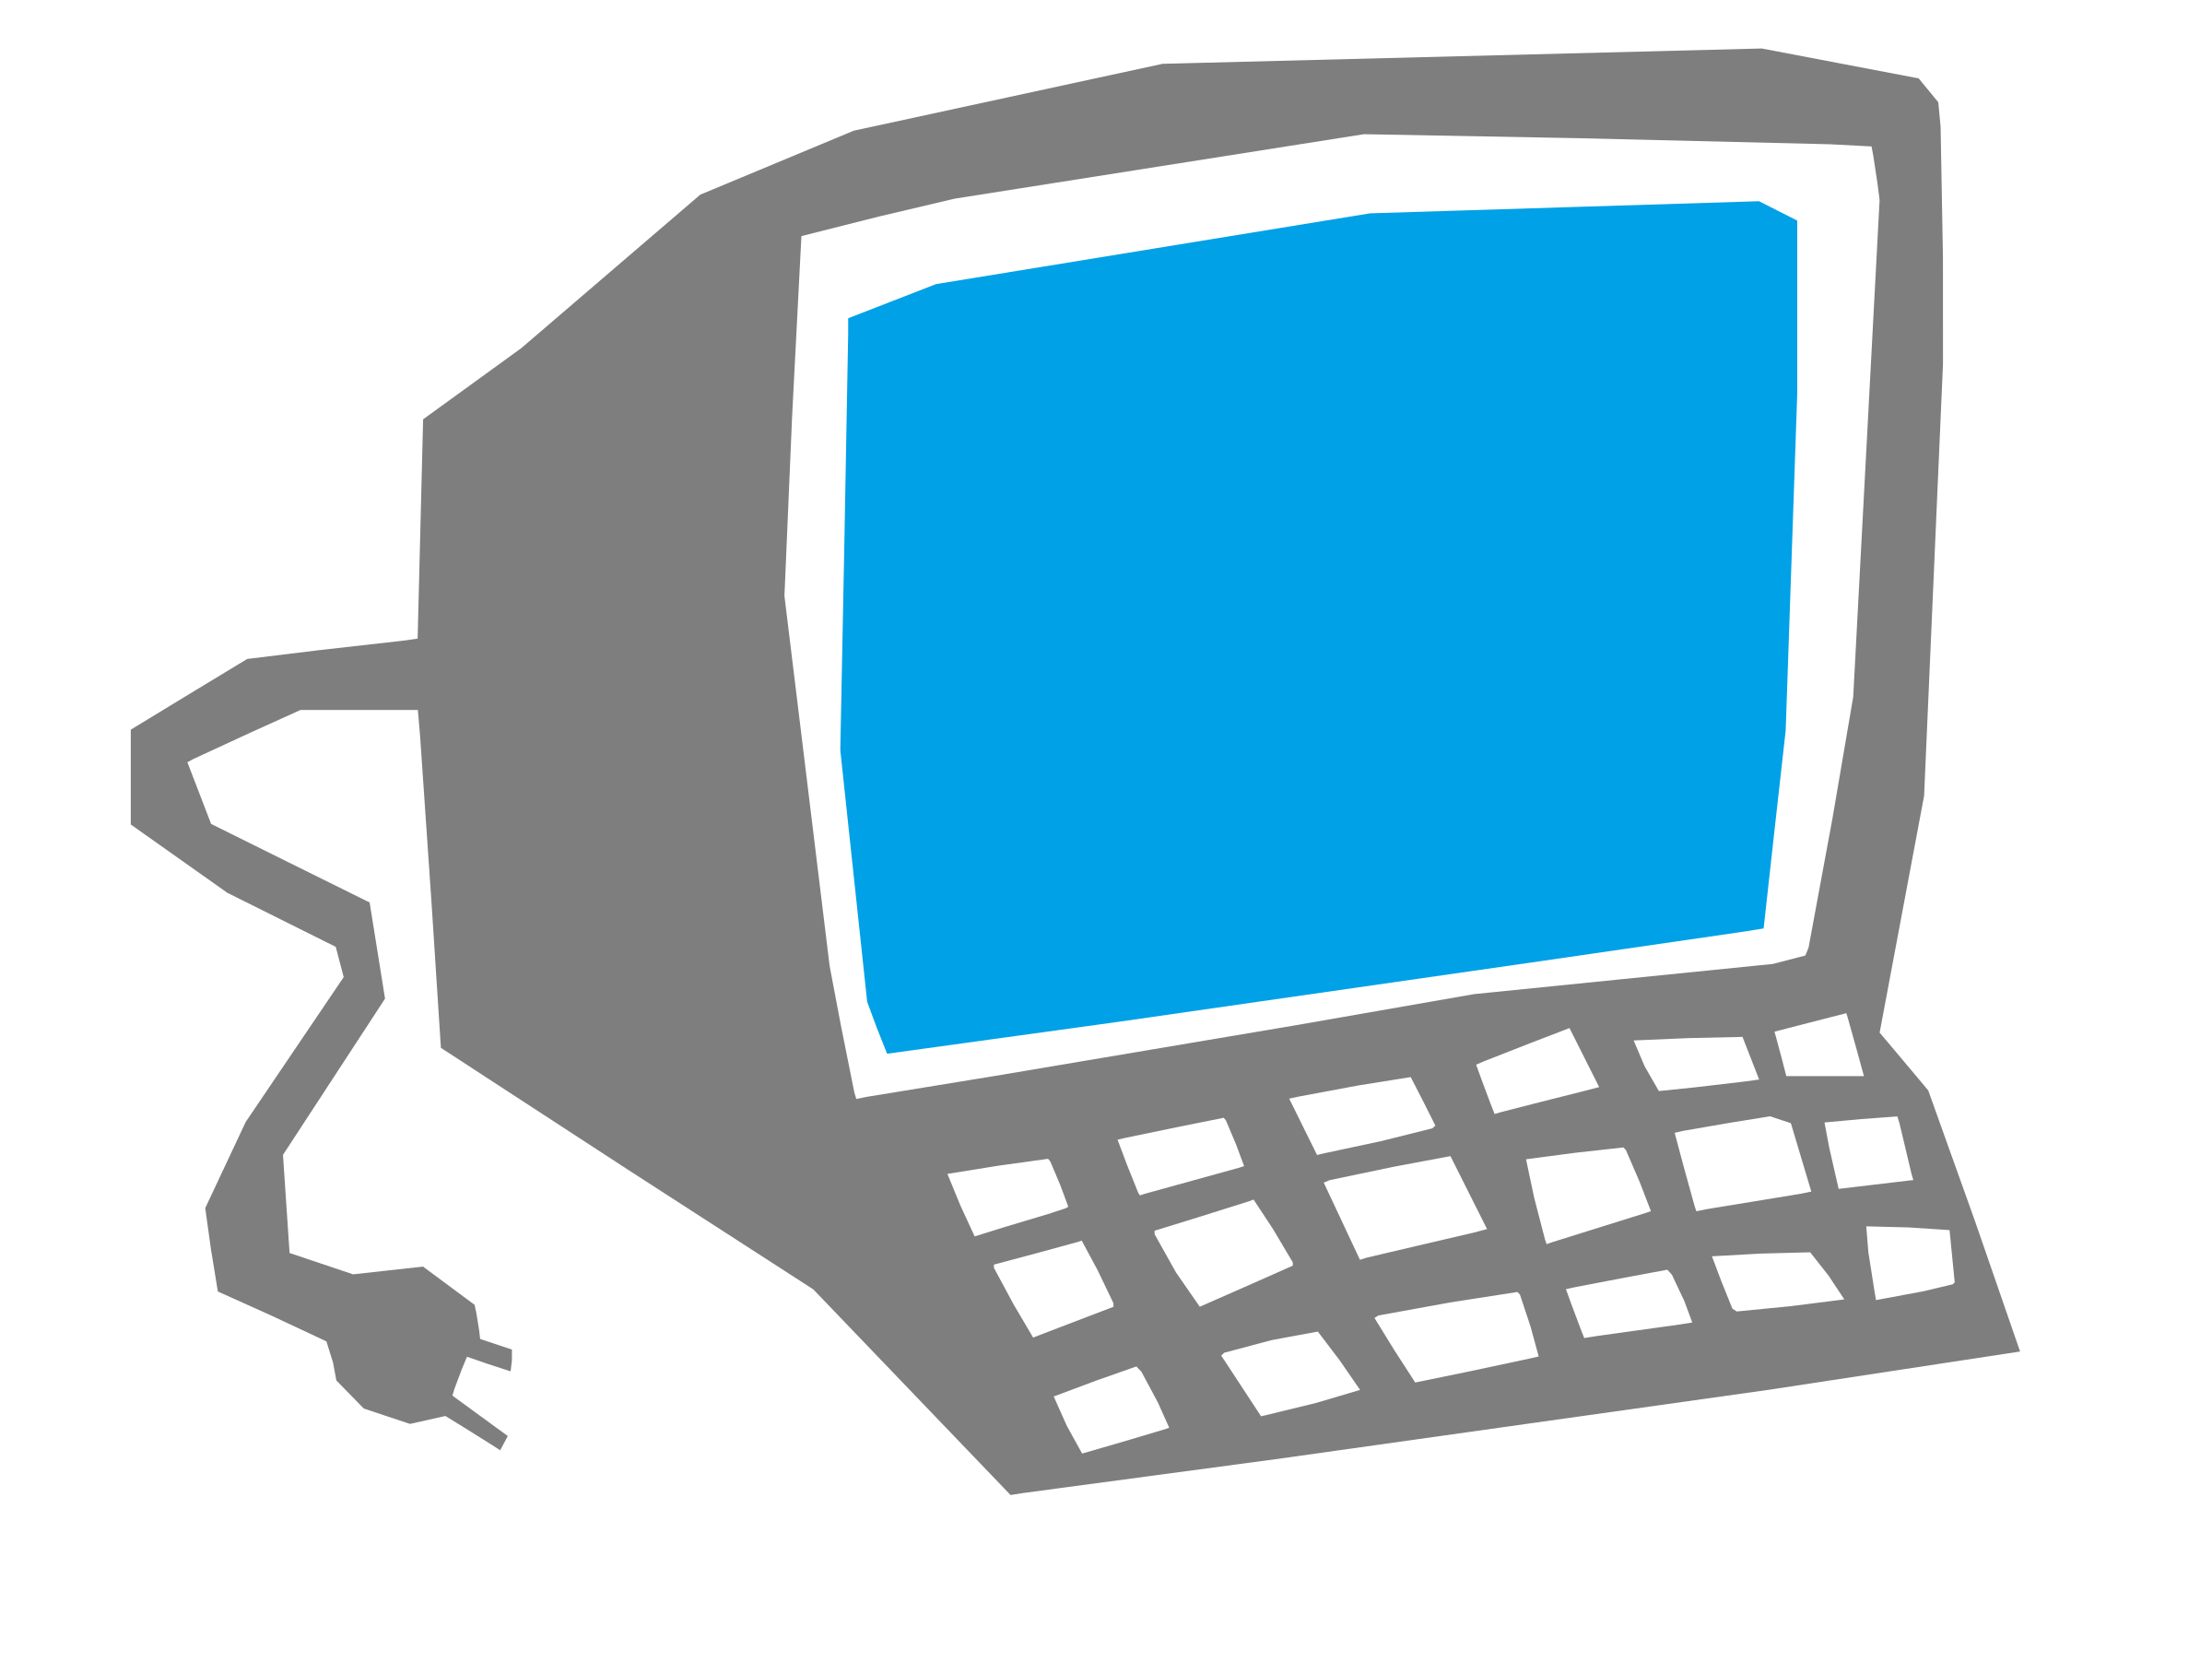 Technology clipart computer technology. Refixed icons png free